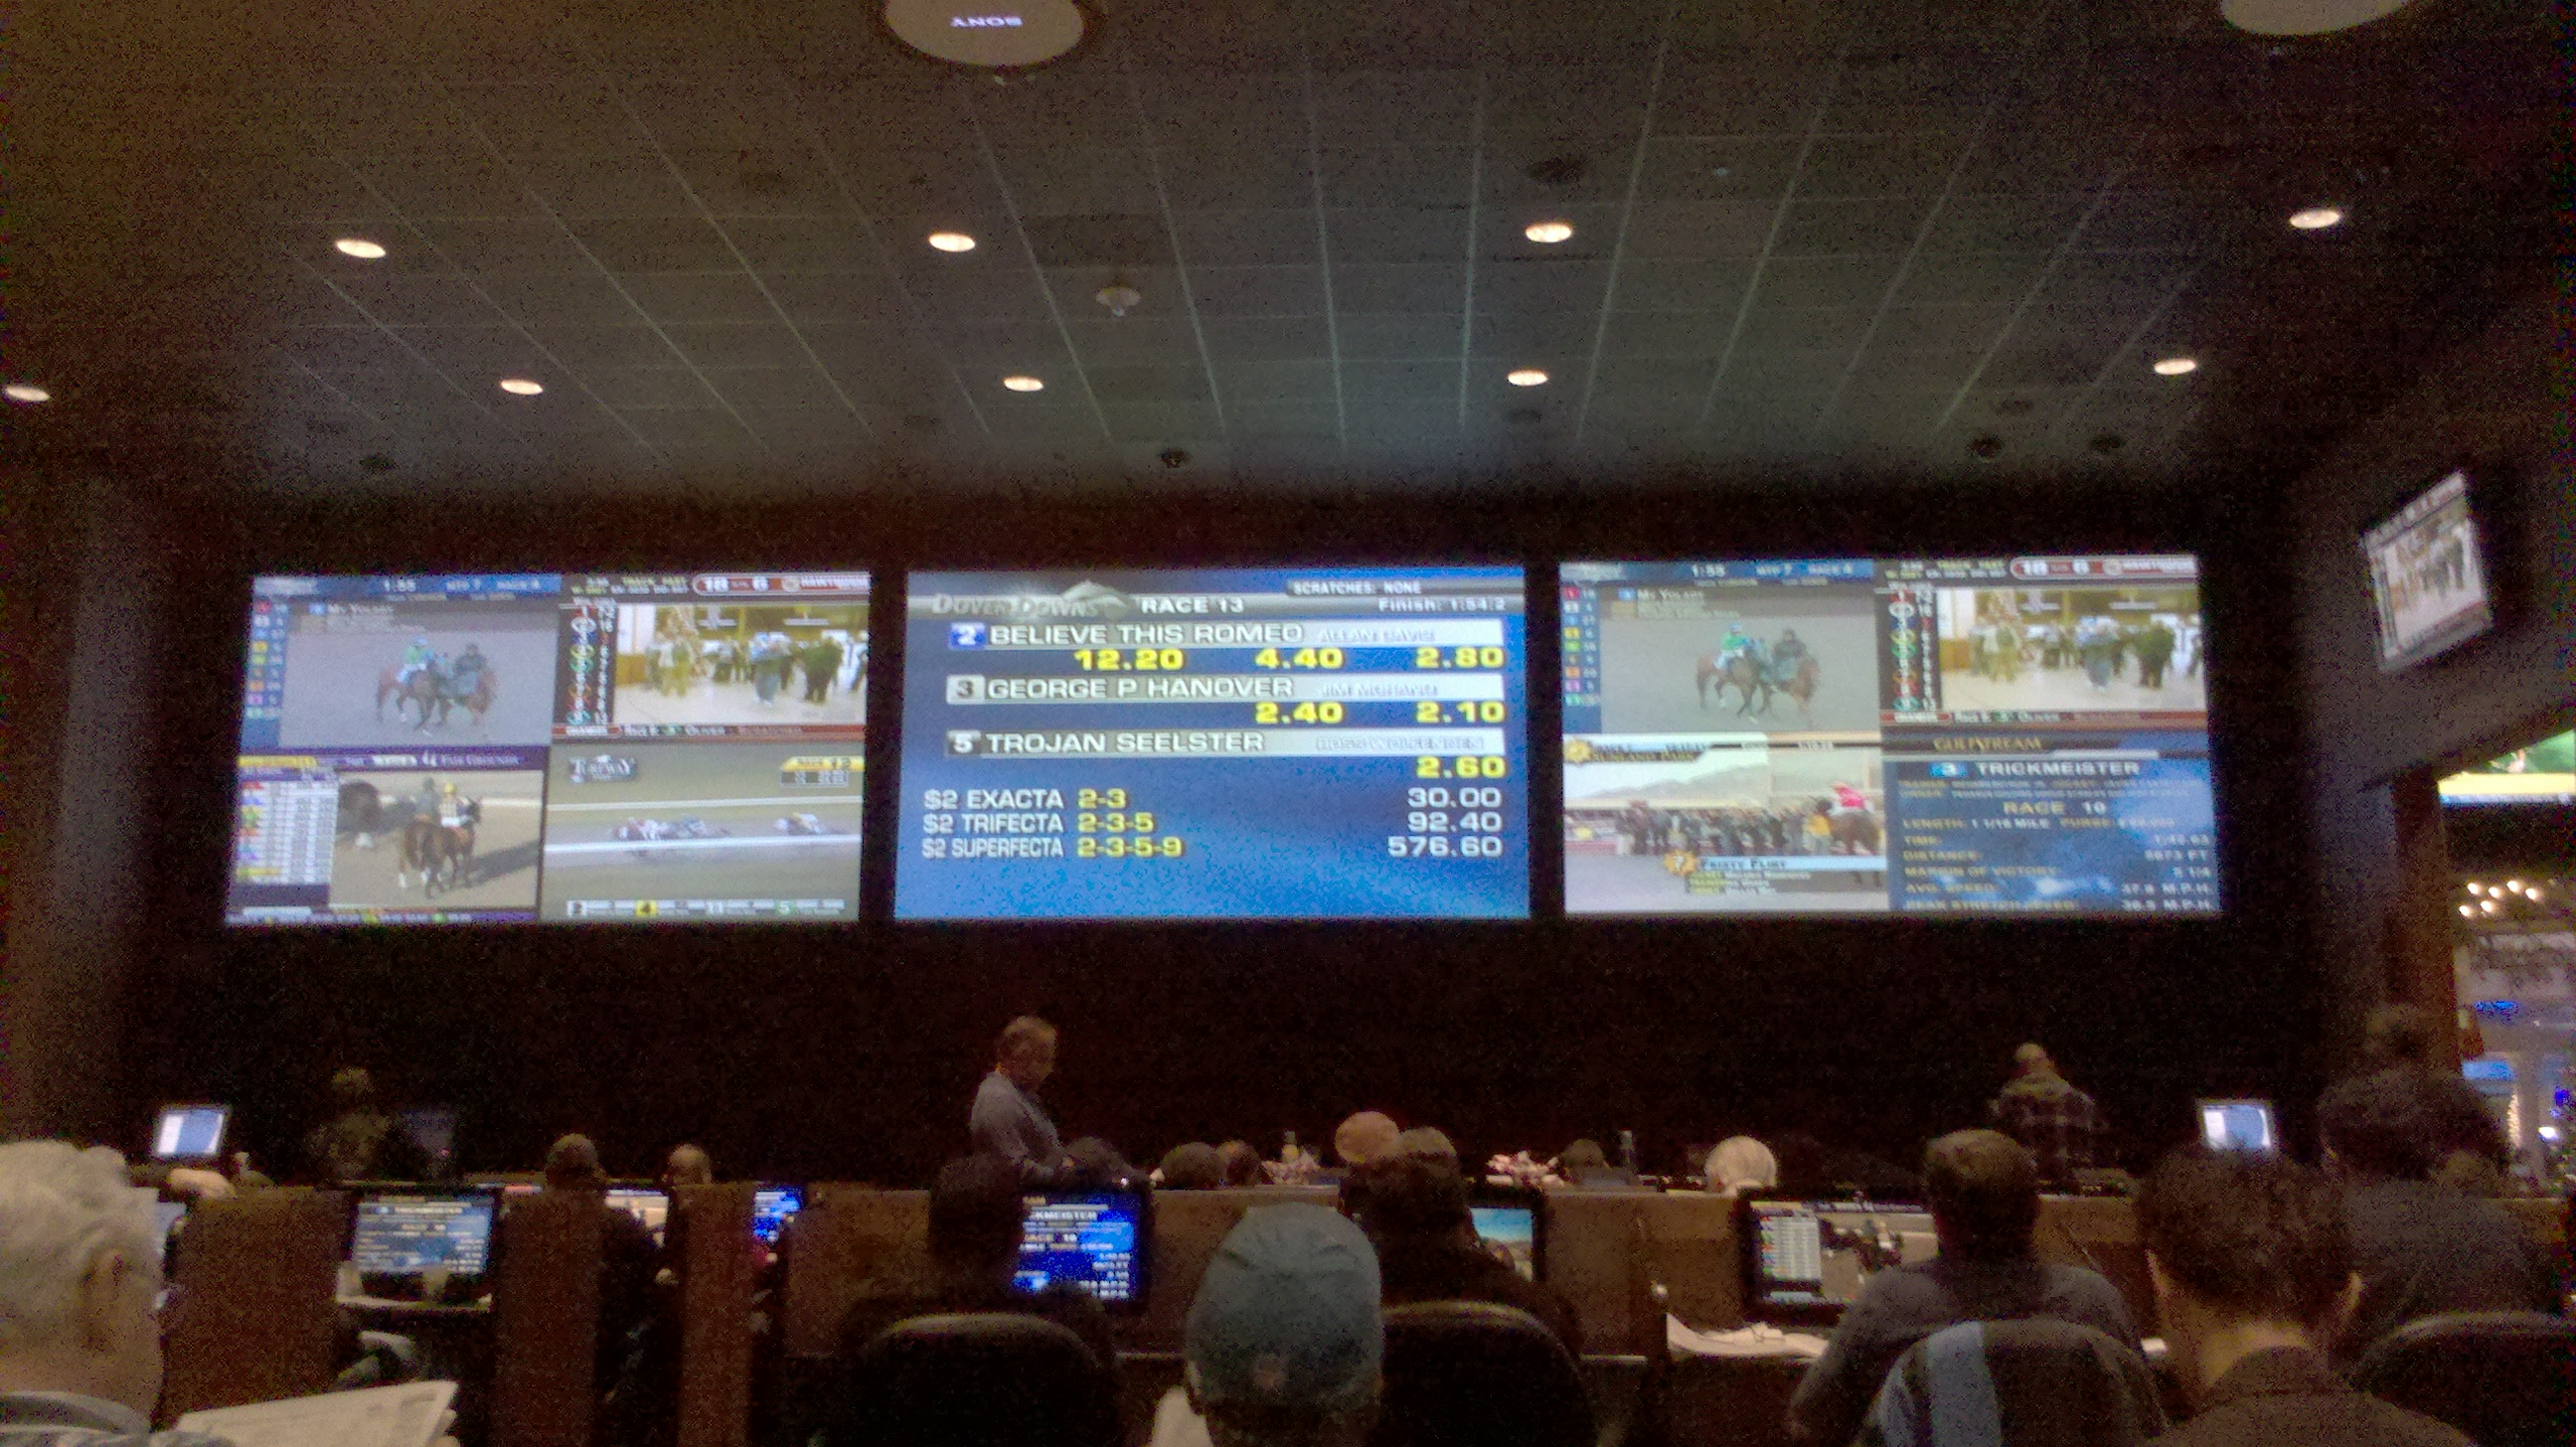 Dover downs sports gambling casino popular sites